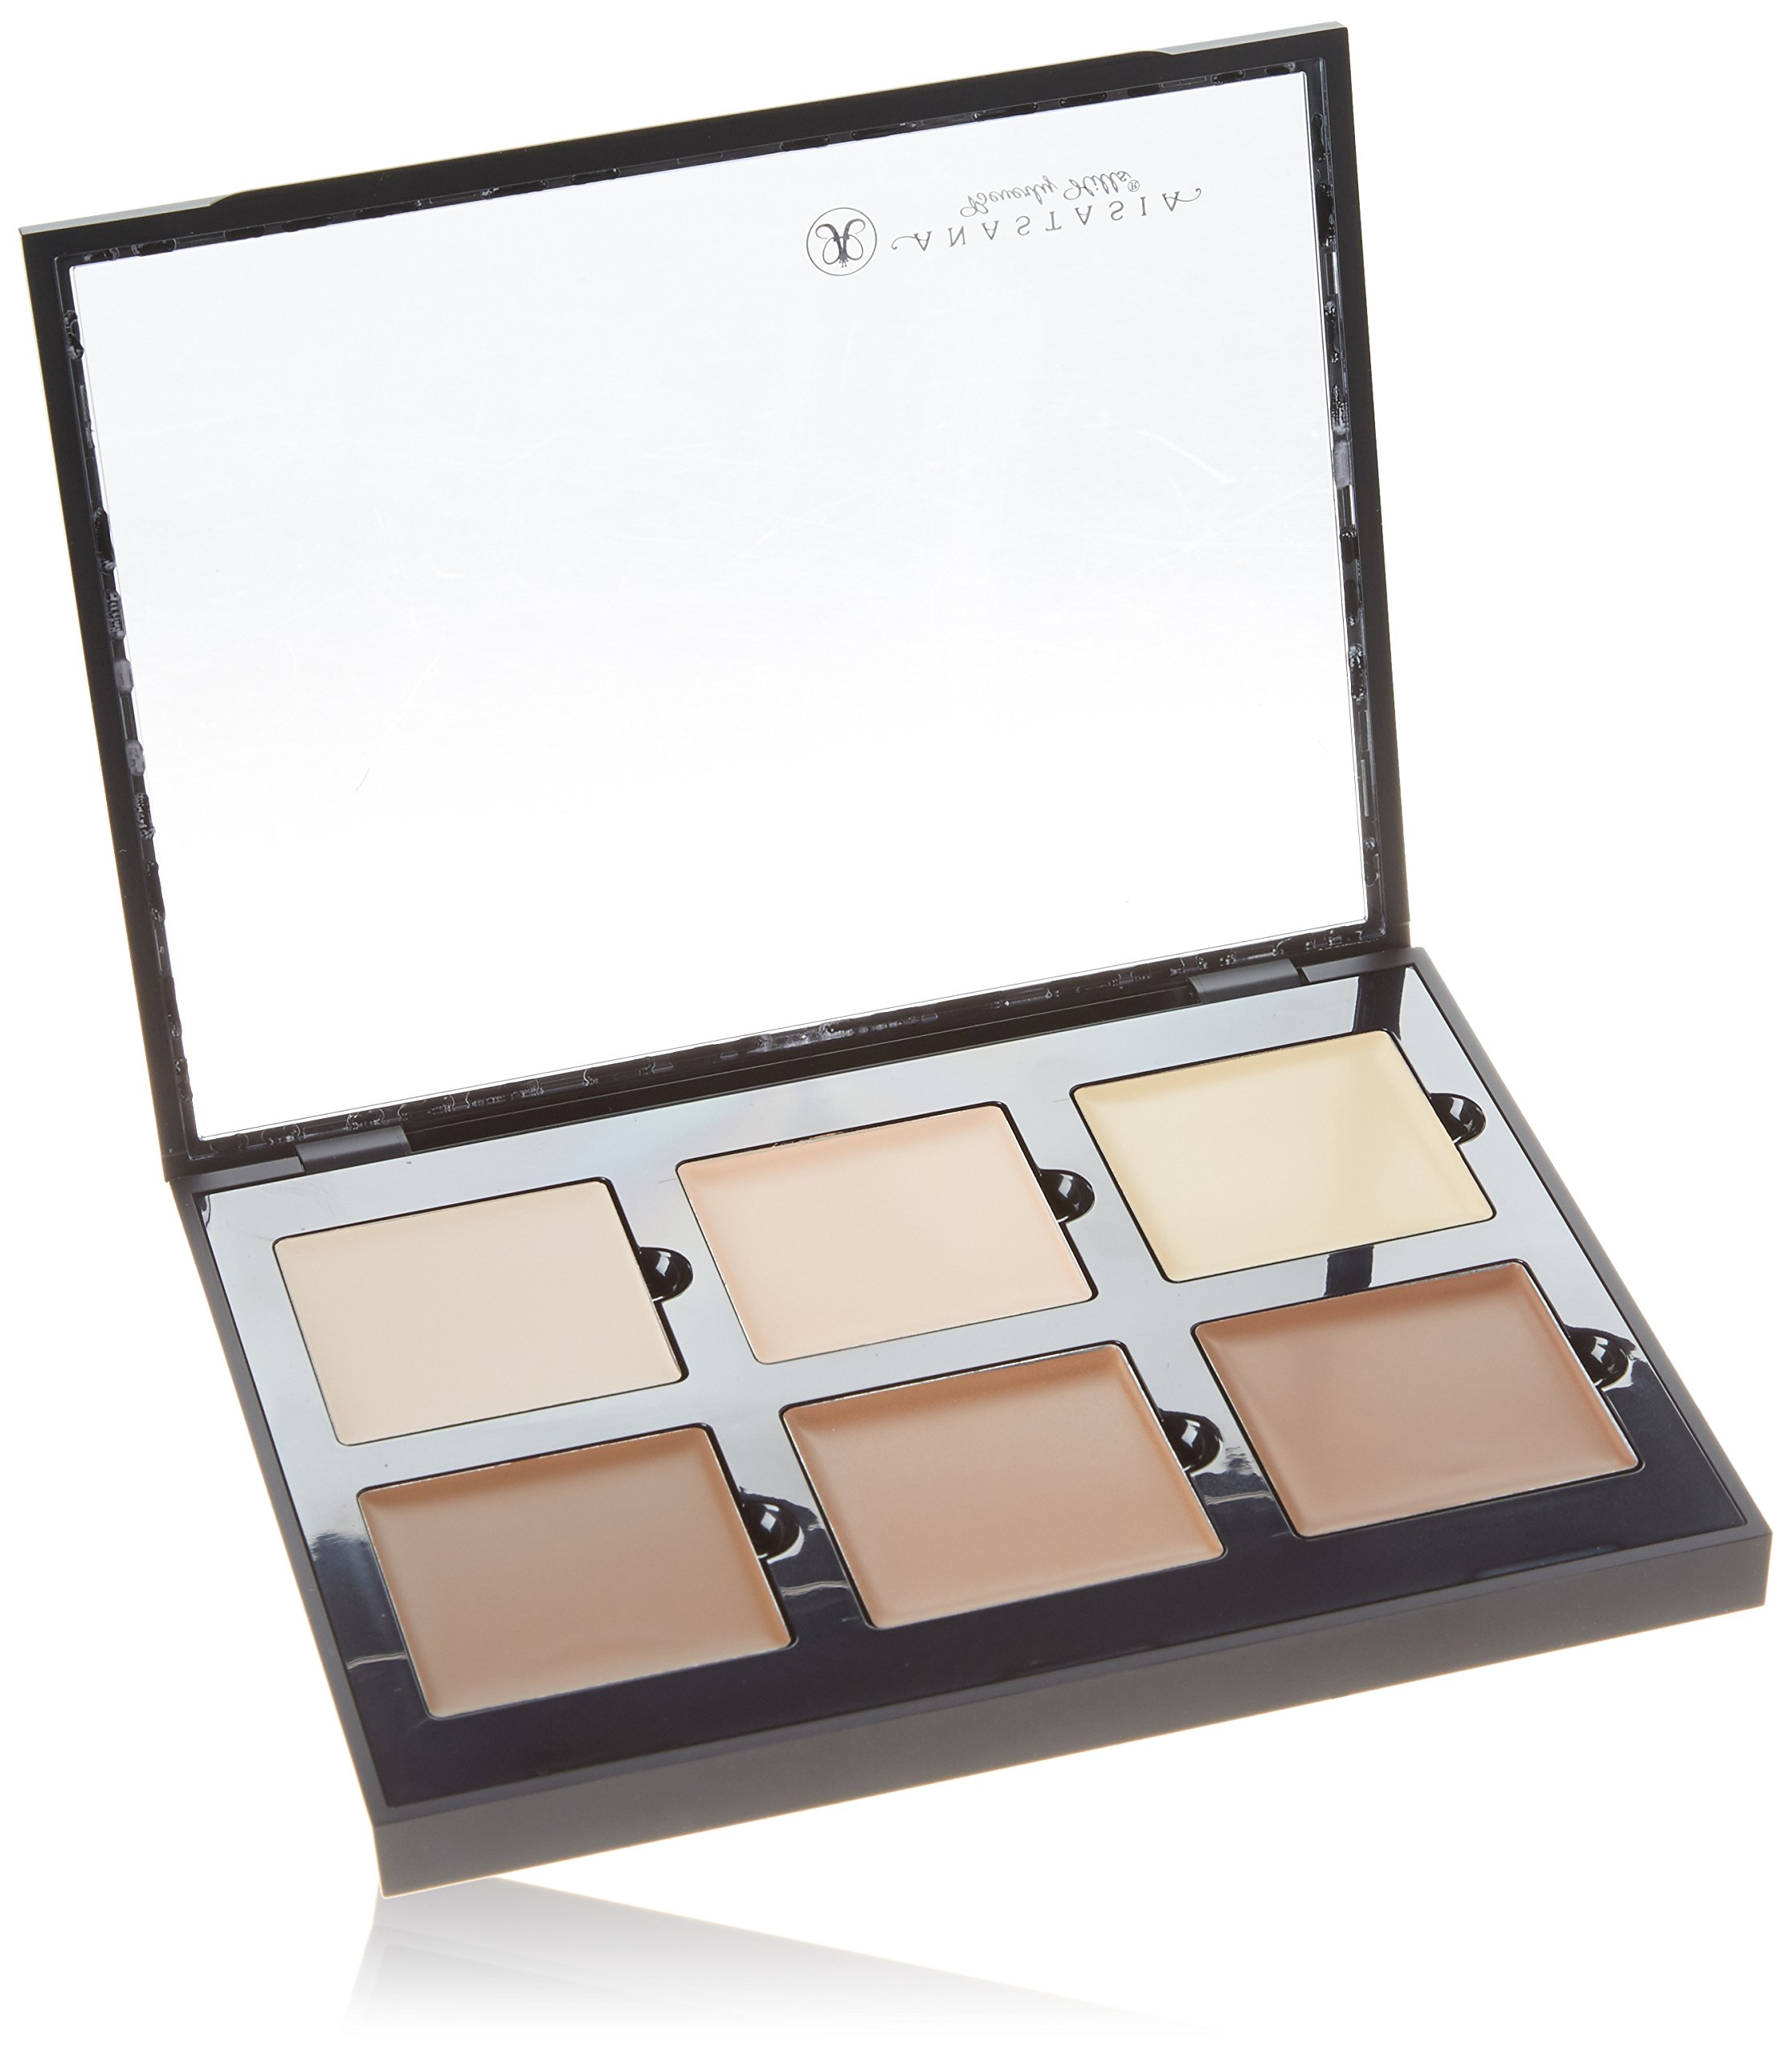 Anastasia Beverly Hills - Contour Cream Kit - Light NET WT. 4.5 g / 0.16 Oz. EACH